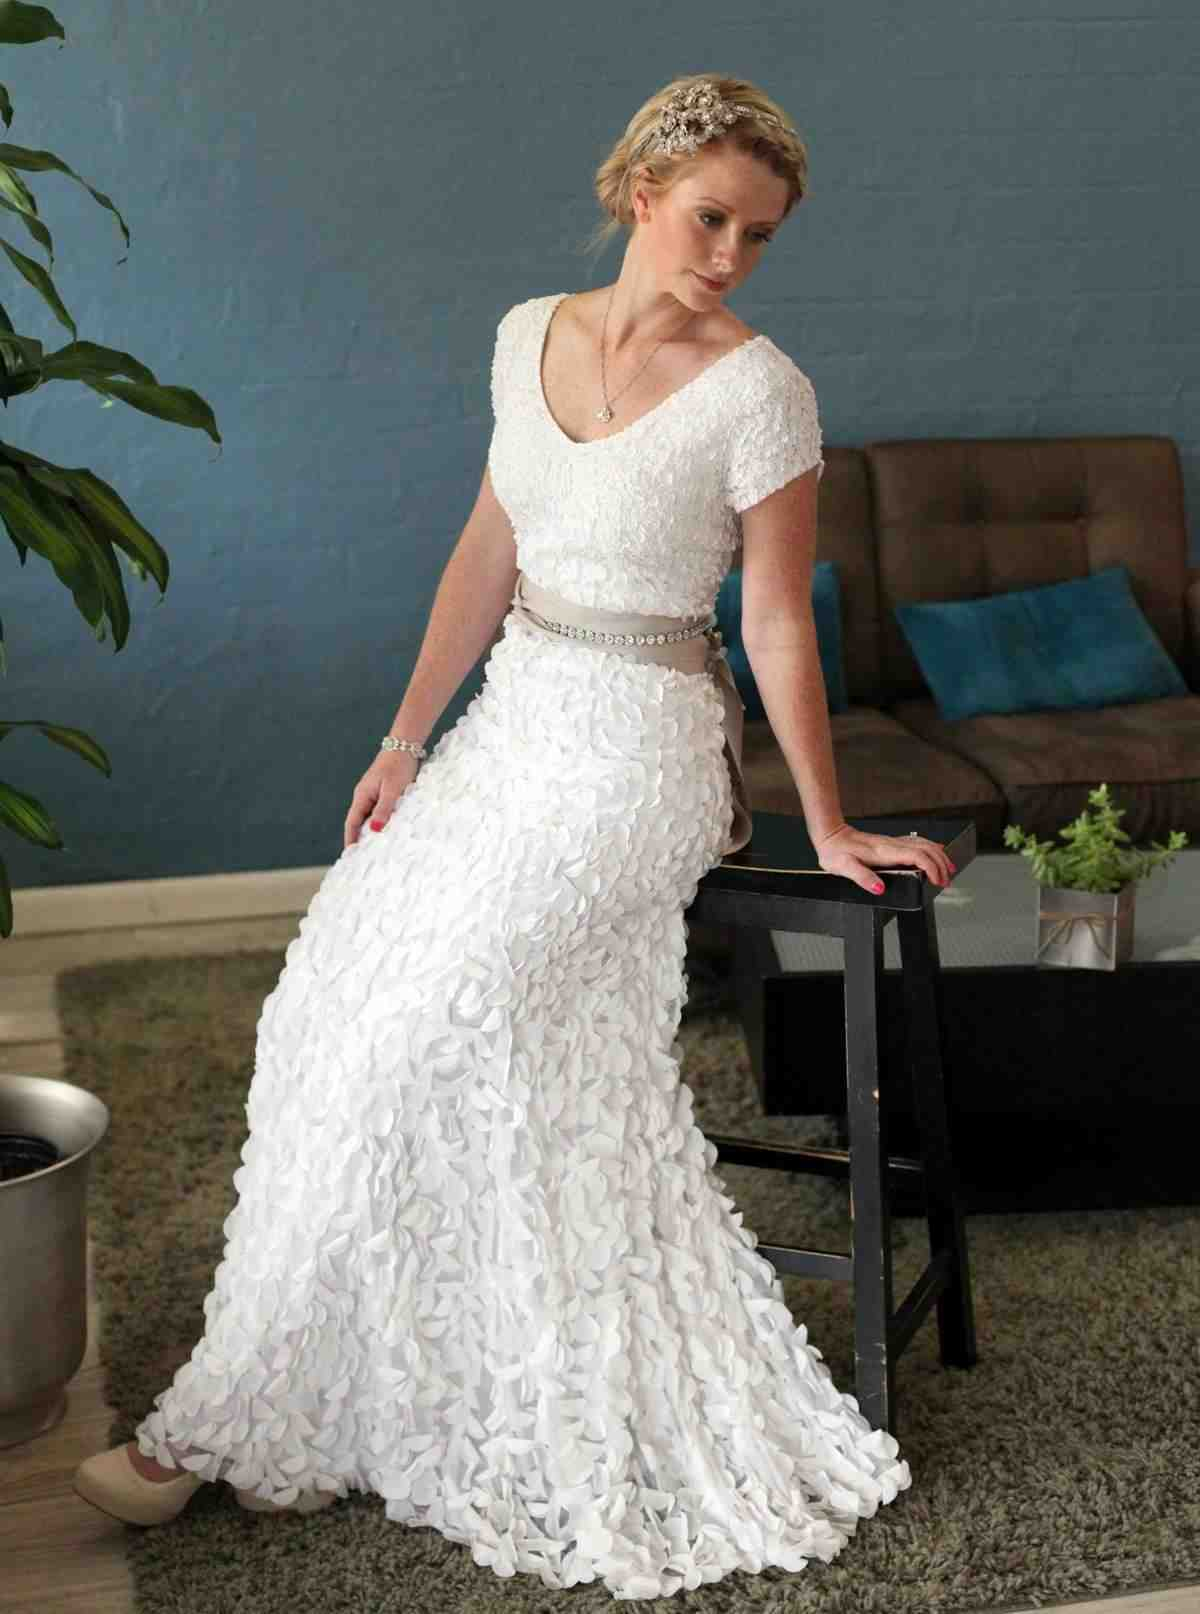 Second wedding dresses how to choose wedding and bridal for Appropriate wedding dresses for second marriage